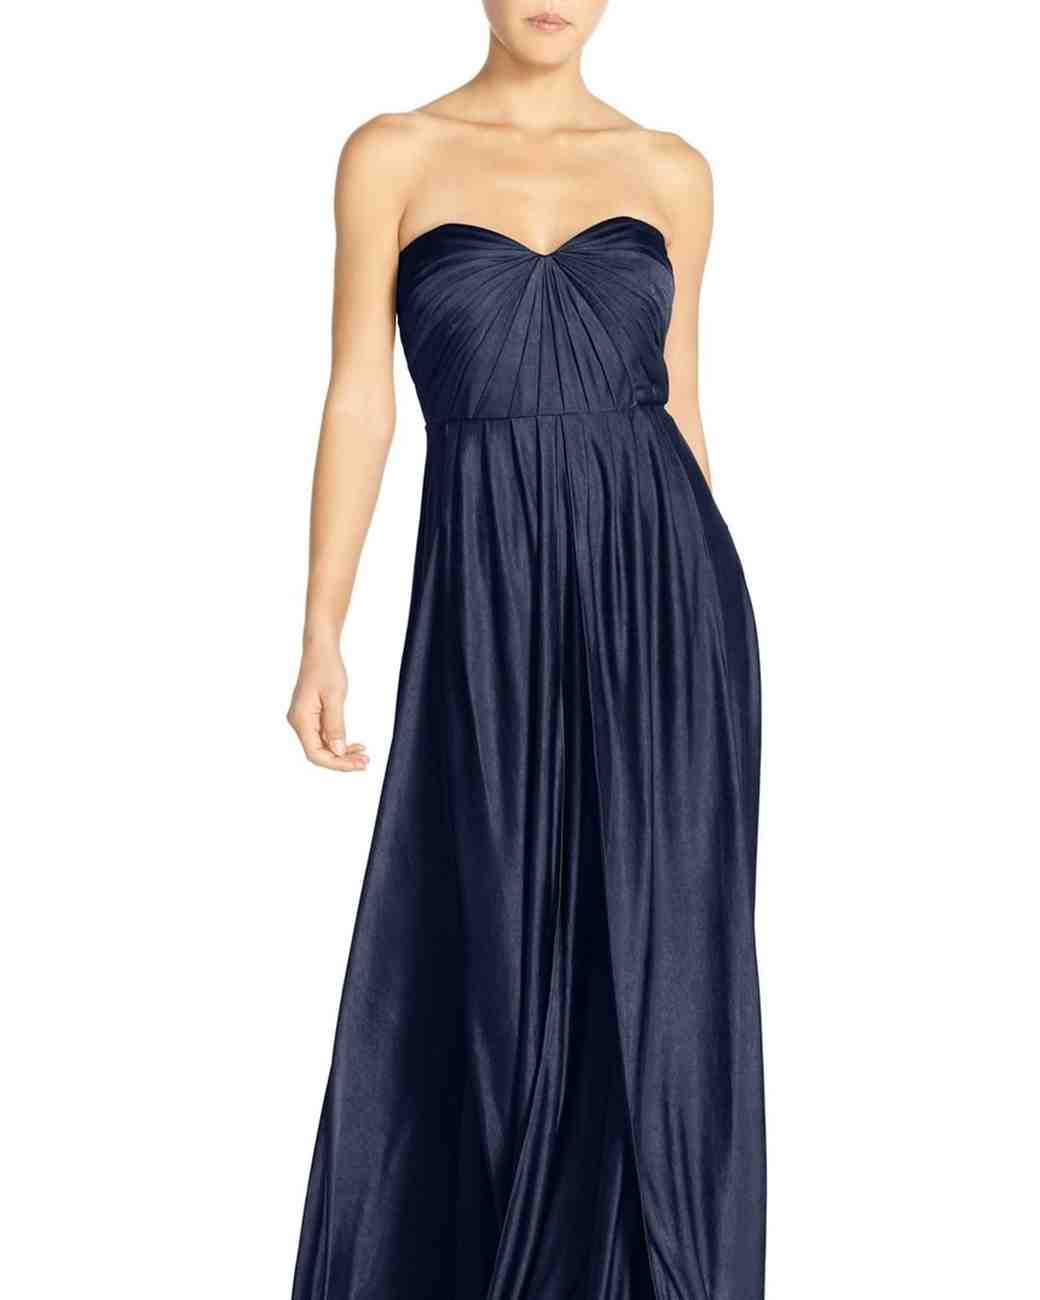 Navy blue bridesmaid dresses martha stewart weddings for Navy dresses for weddings